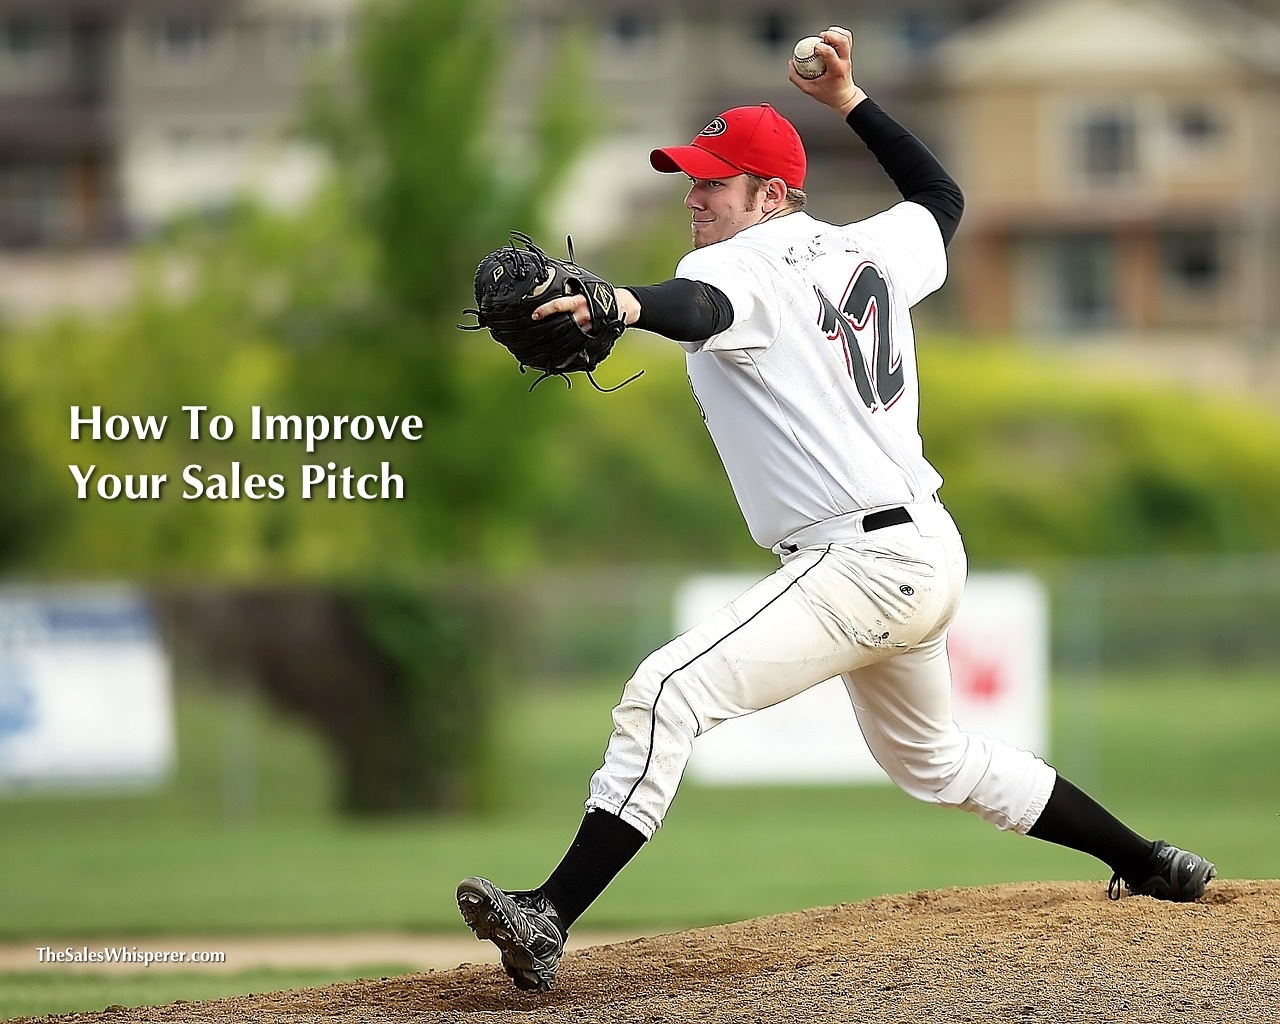 To improve your sales, improve your pitch with professional development from Wes Schaeffer, The Sales Whisperer®